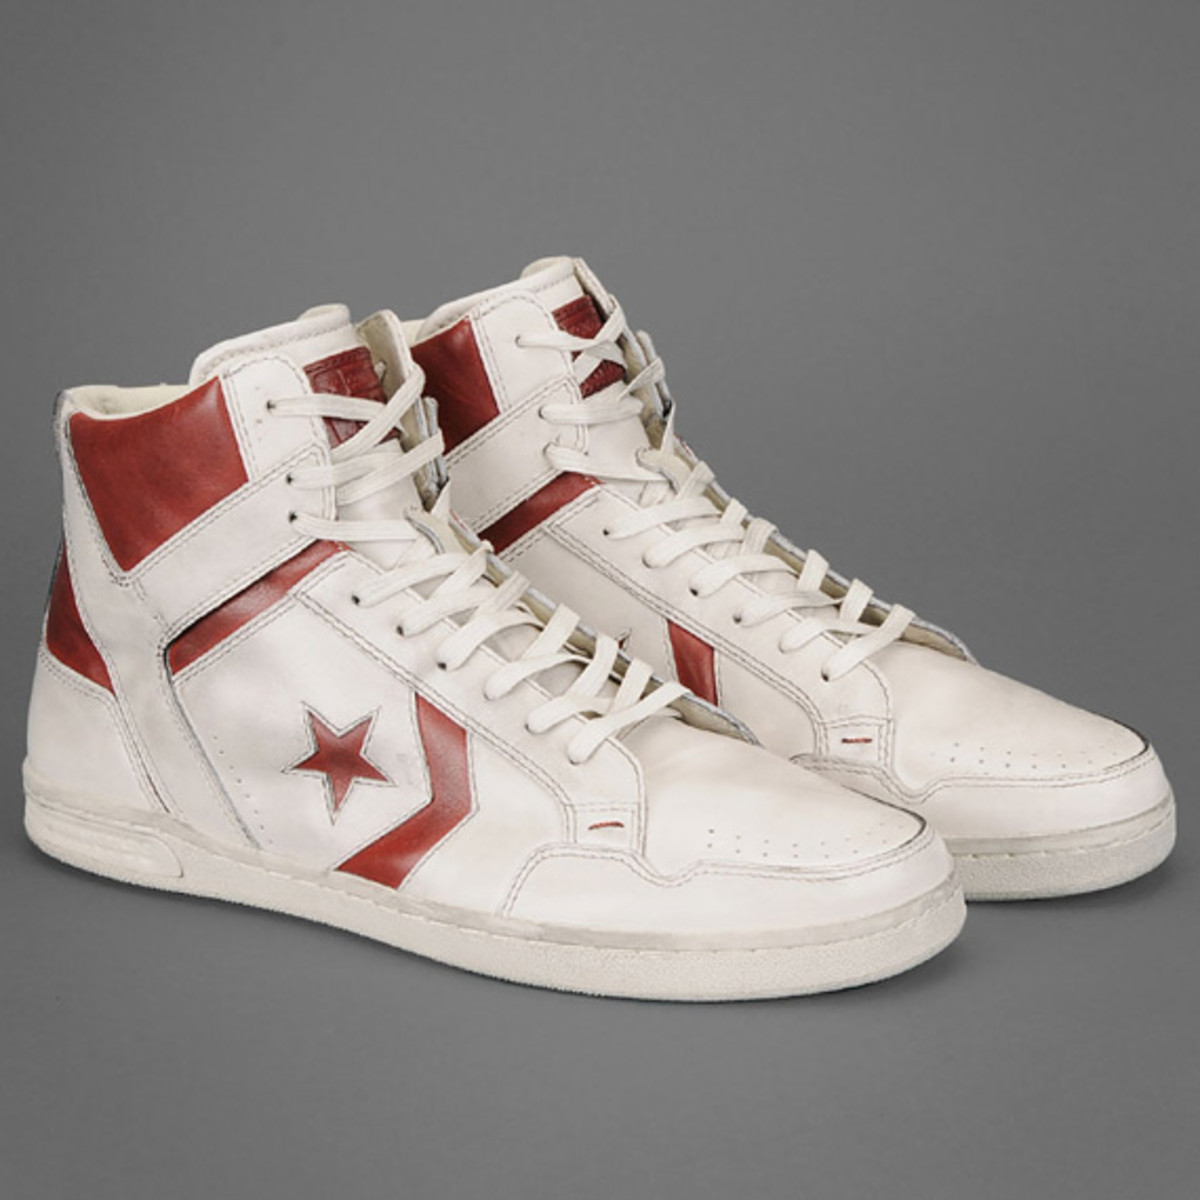 john-varvatos-converse-weapon-15